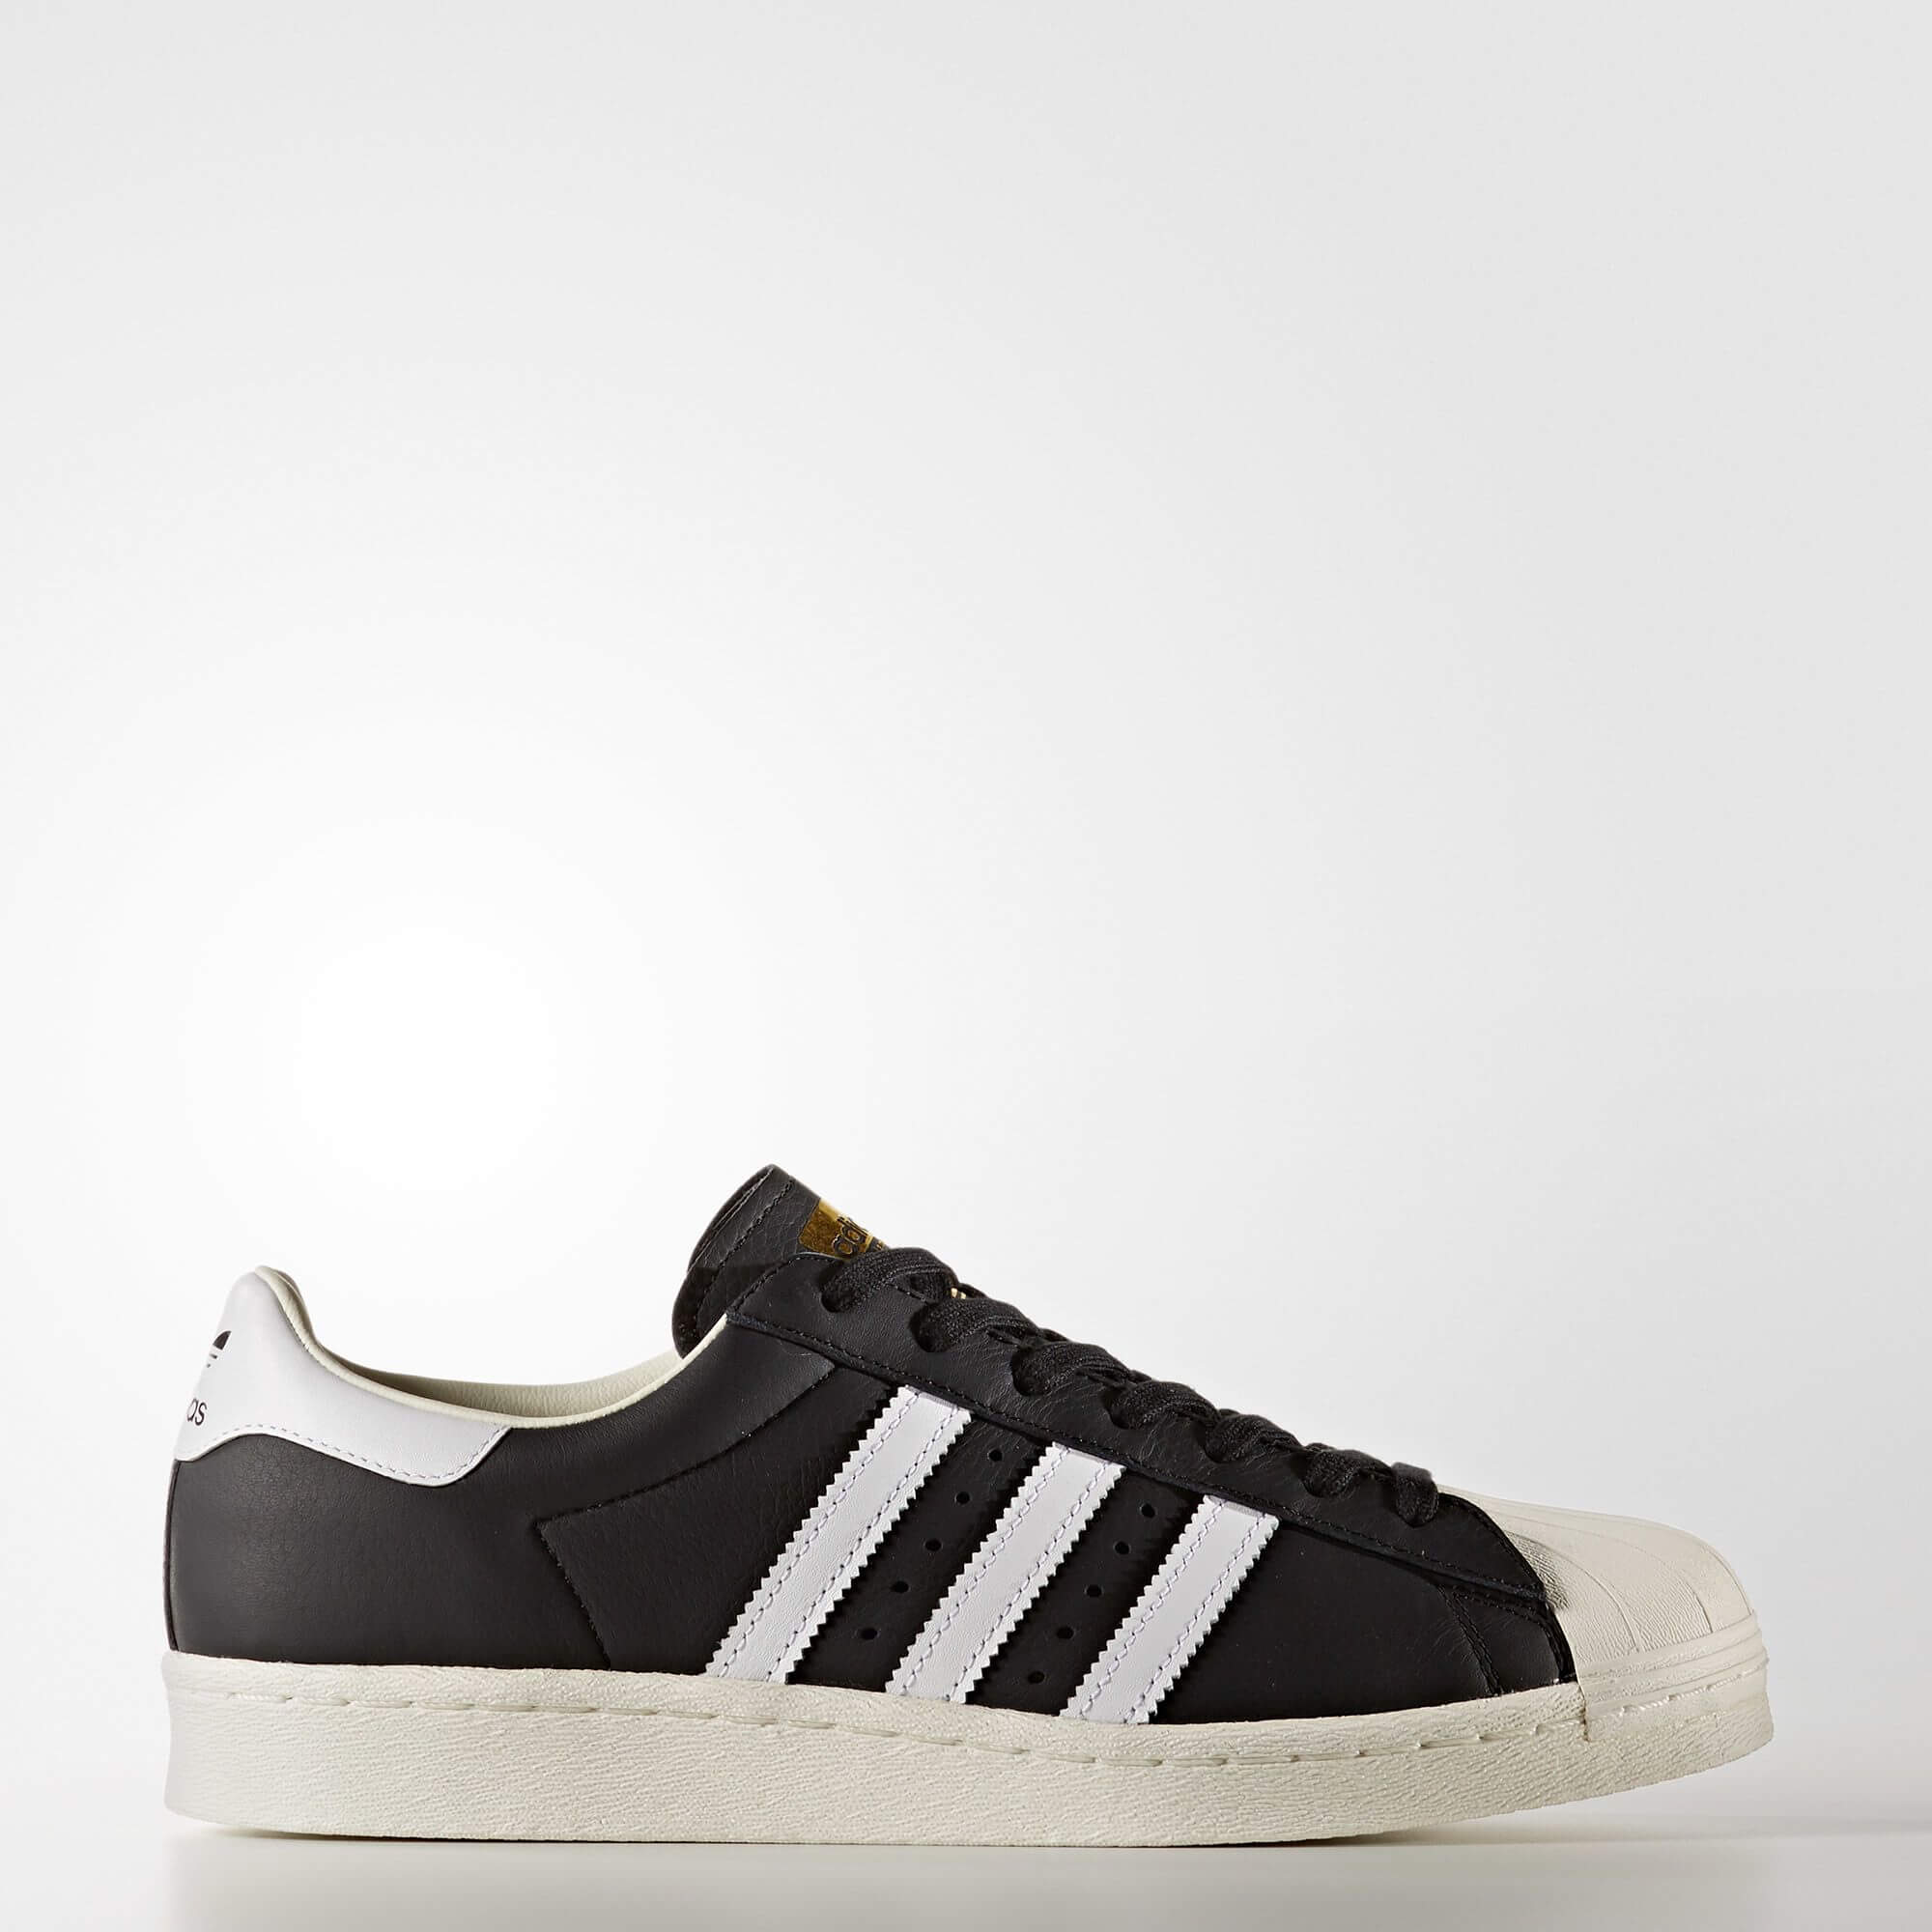 Adidas Superstar black shoe laces